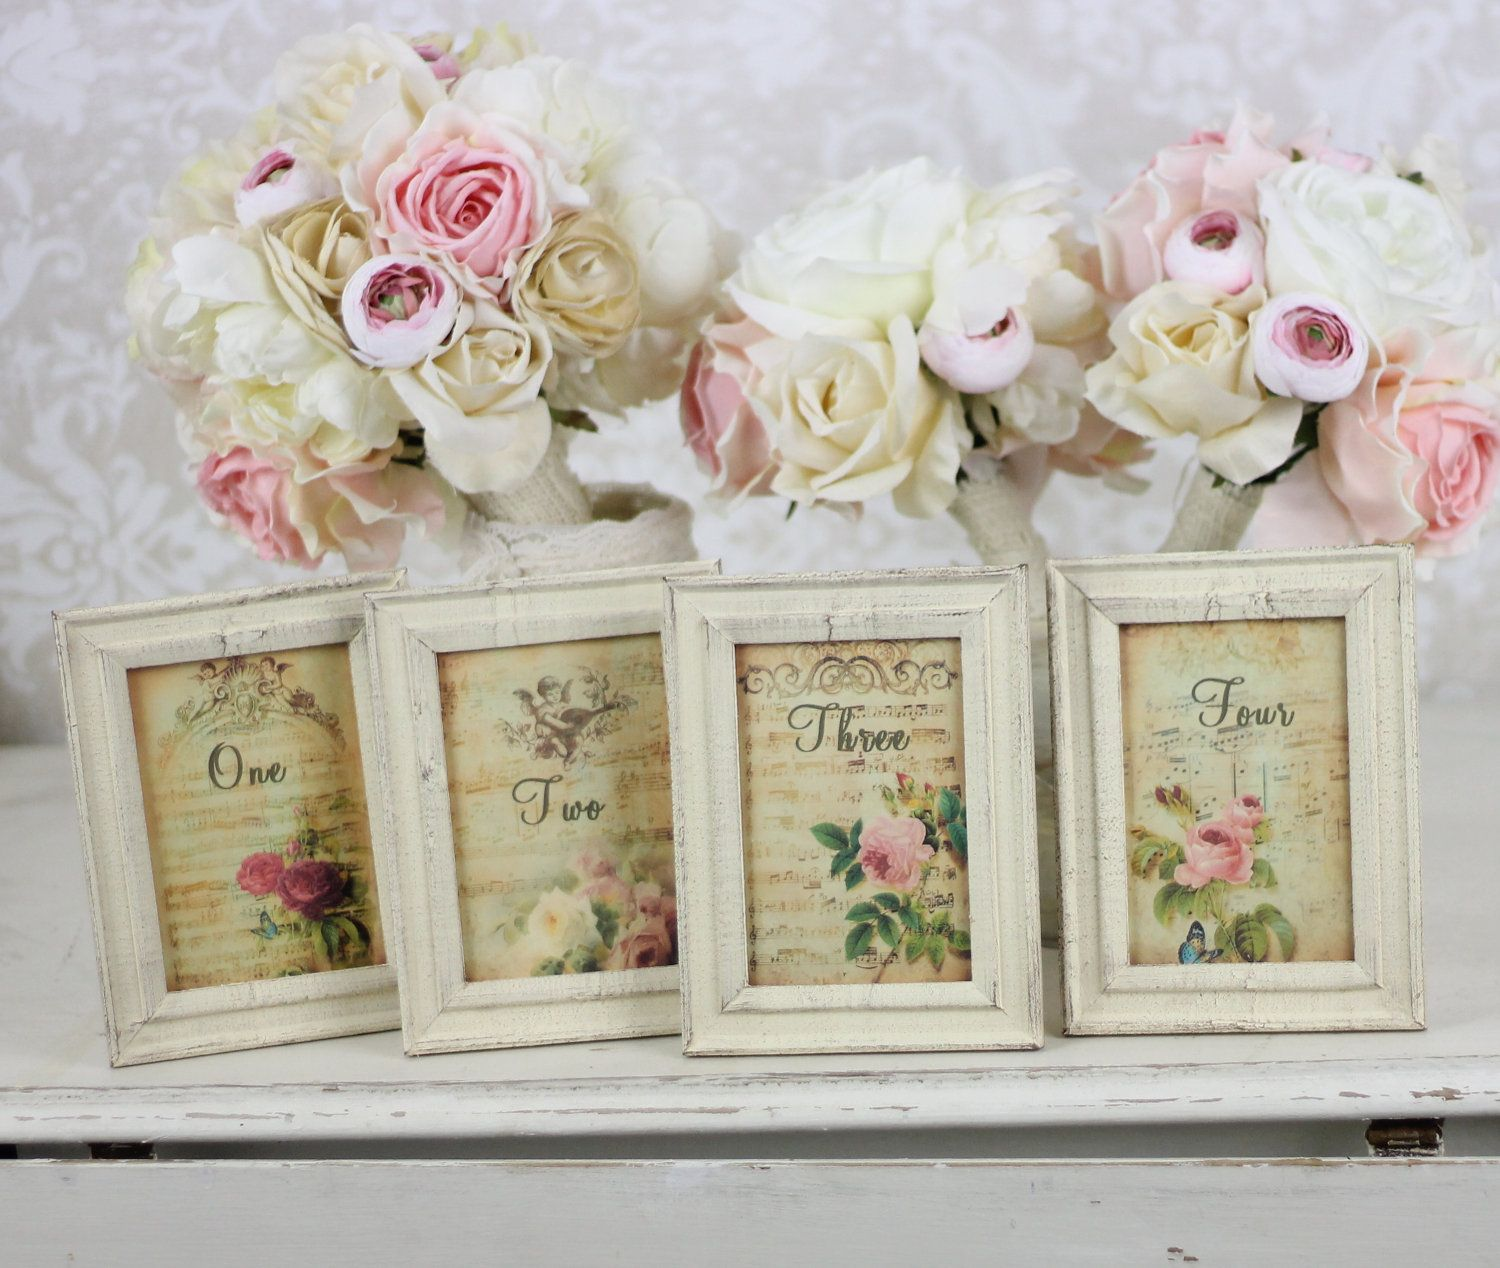 Unique Table Numbers For Wedding Reception Ideas: Shabby Chic Table Numbers With Distressed Frames Vintage